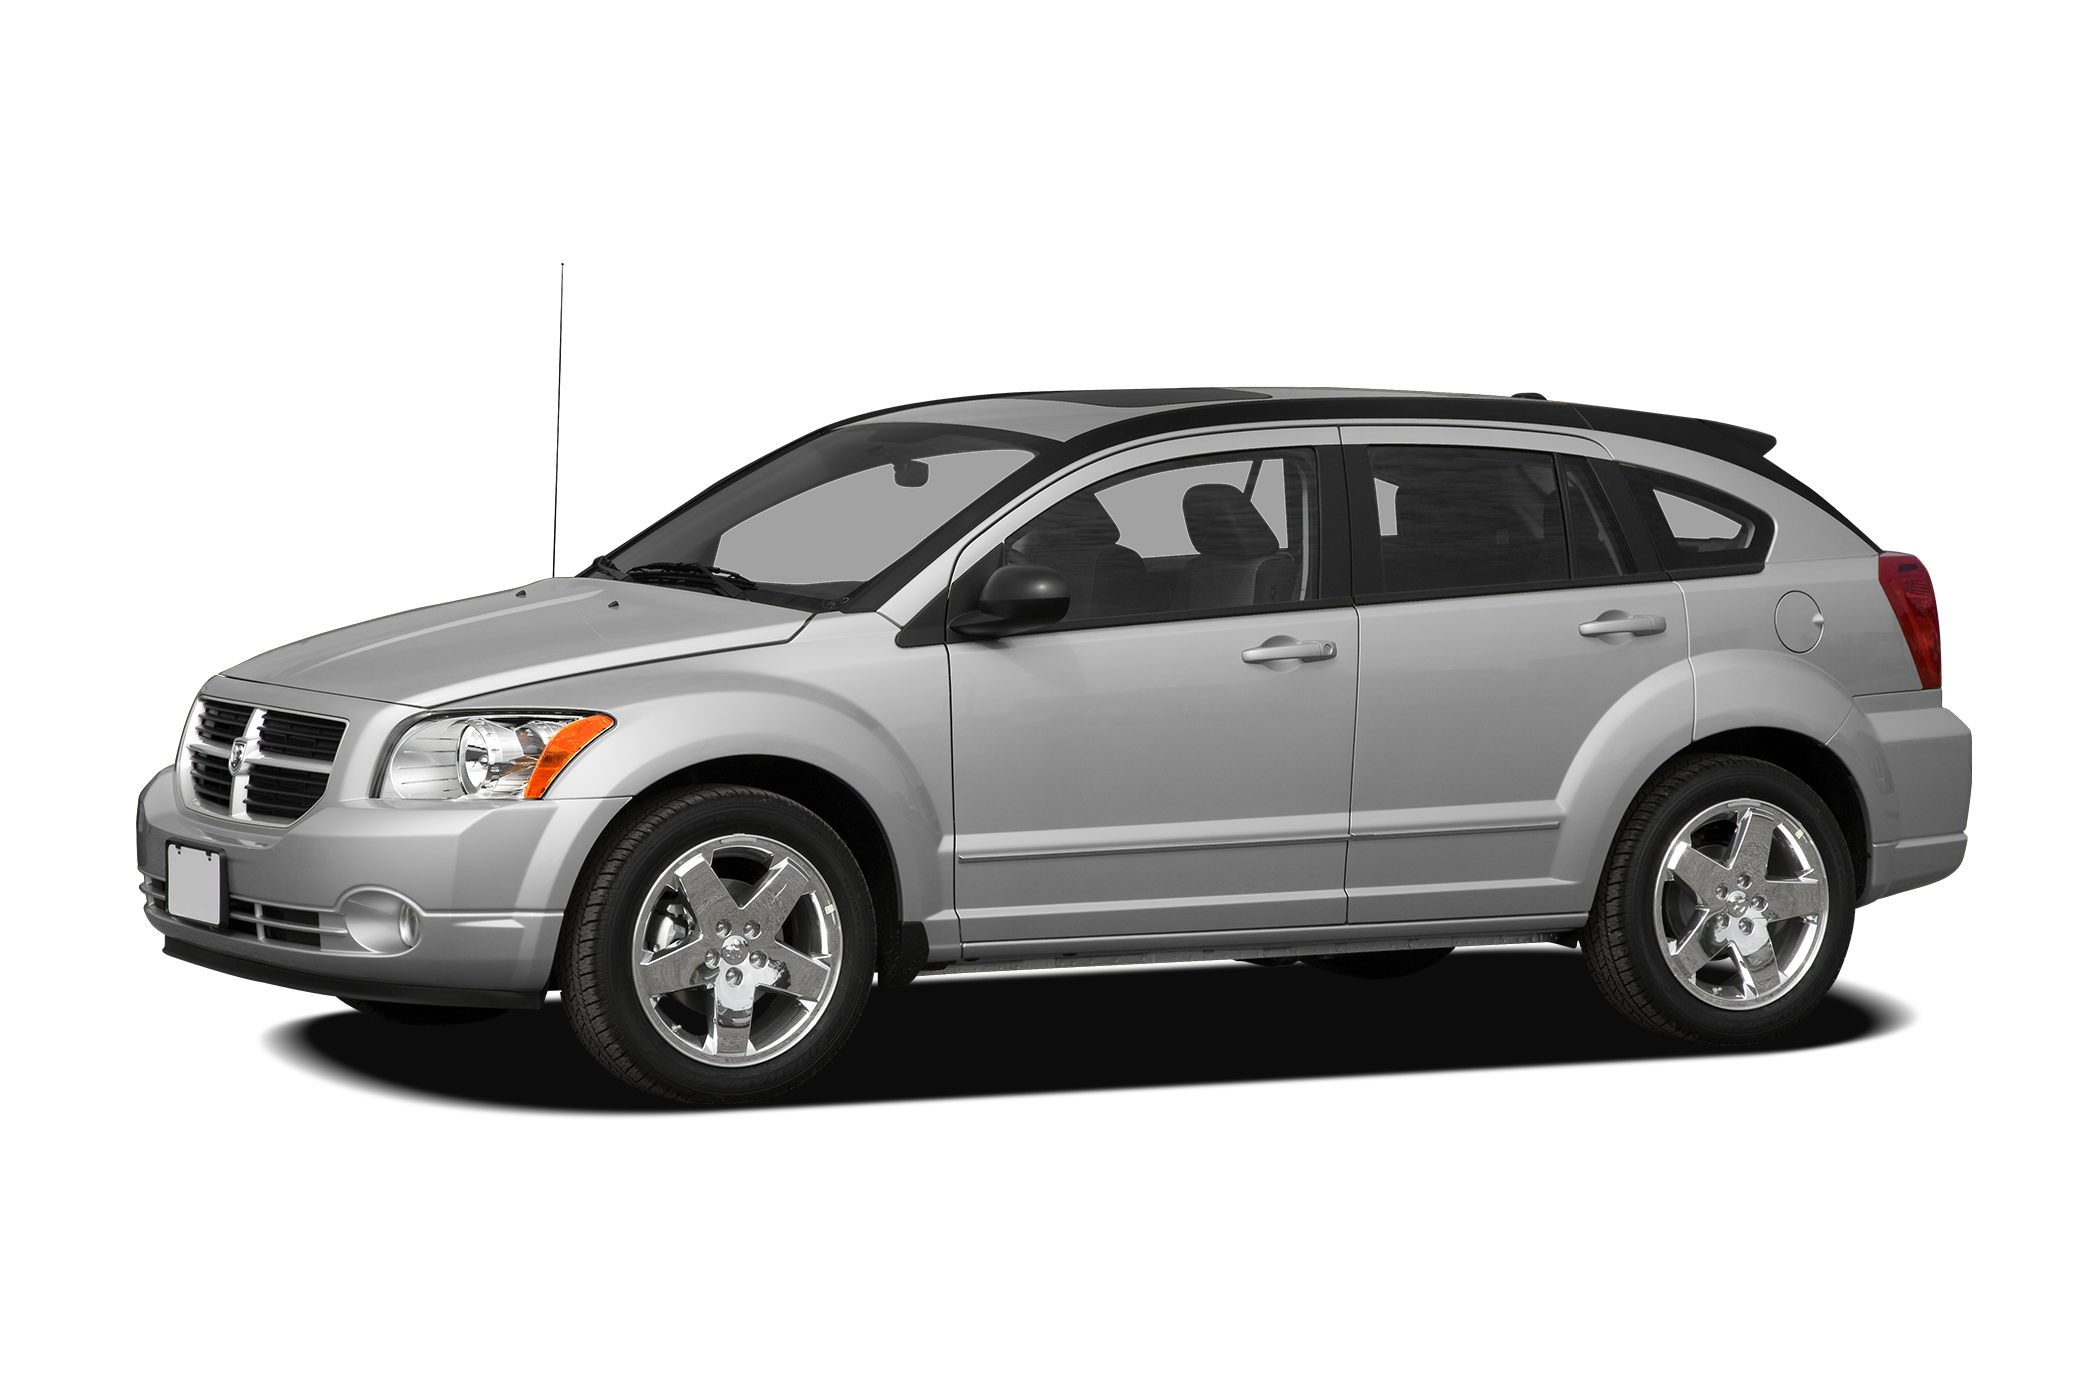 2010 Dodge Caliber Mainstreet Hatchback for sale in Augusta for $10,997 with 74,413 miles